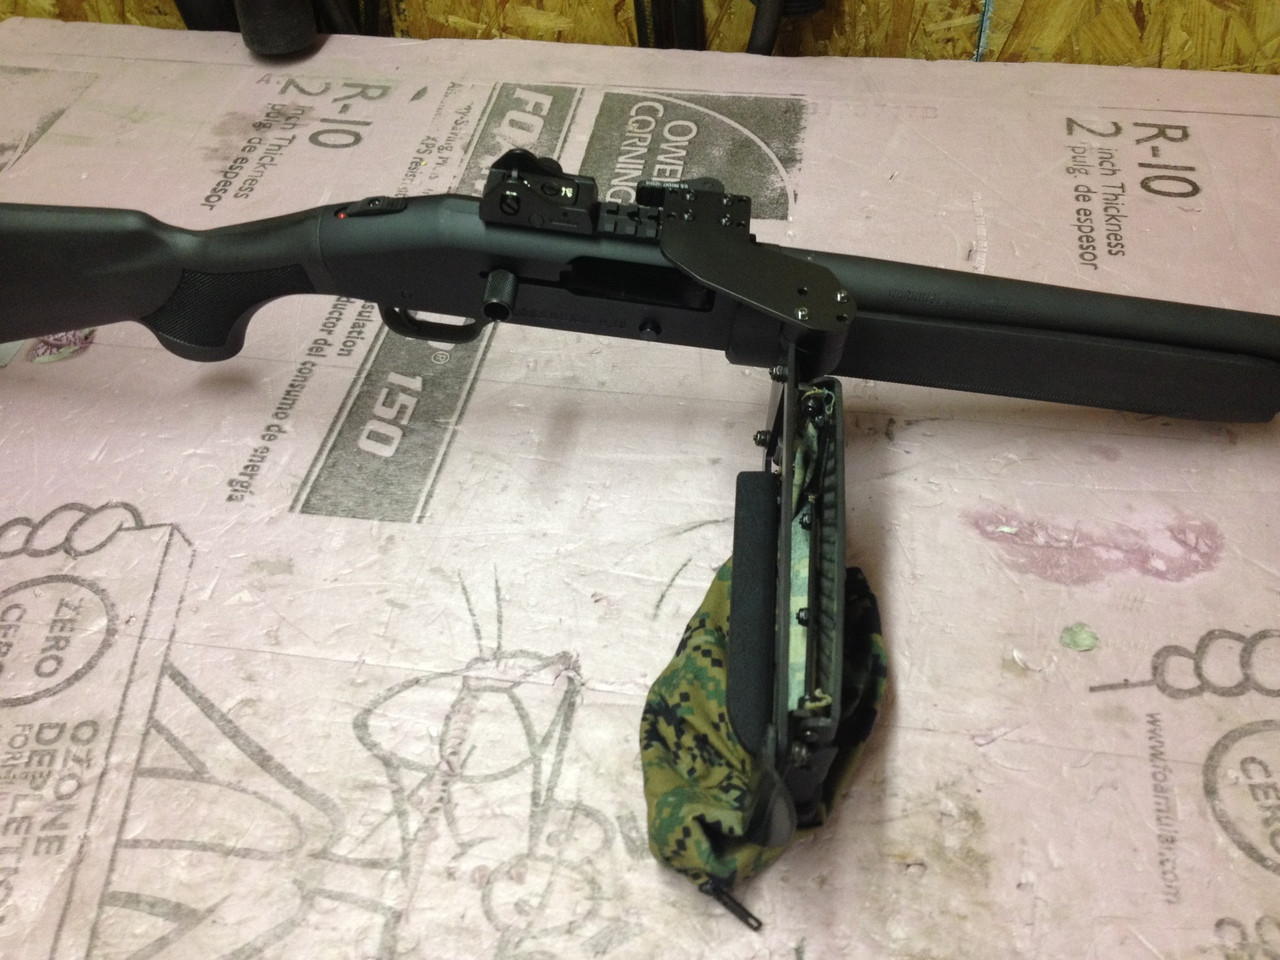 shown here used as a kickstand on Mossburg 930 SPX.